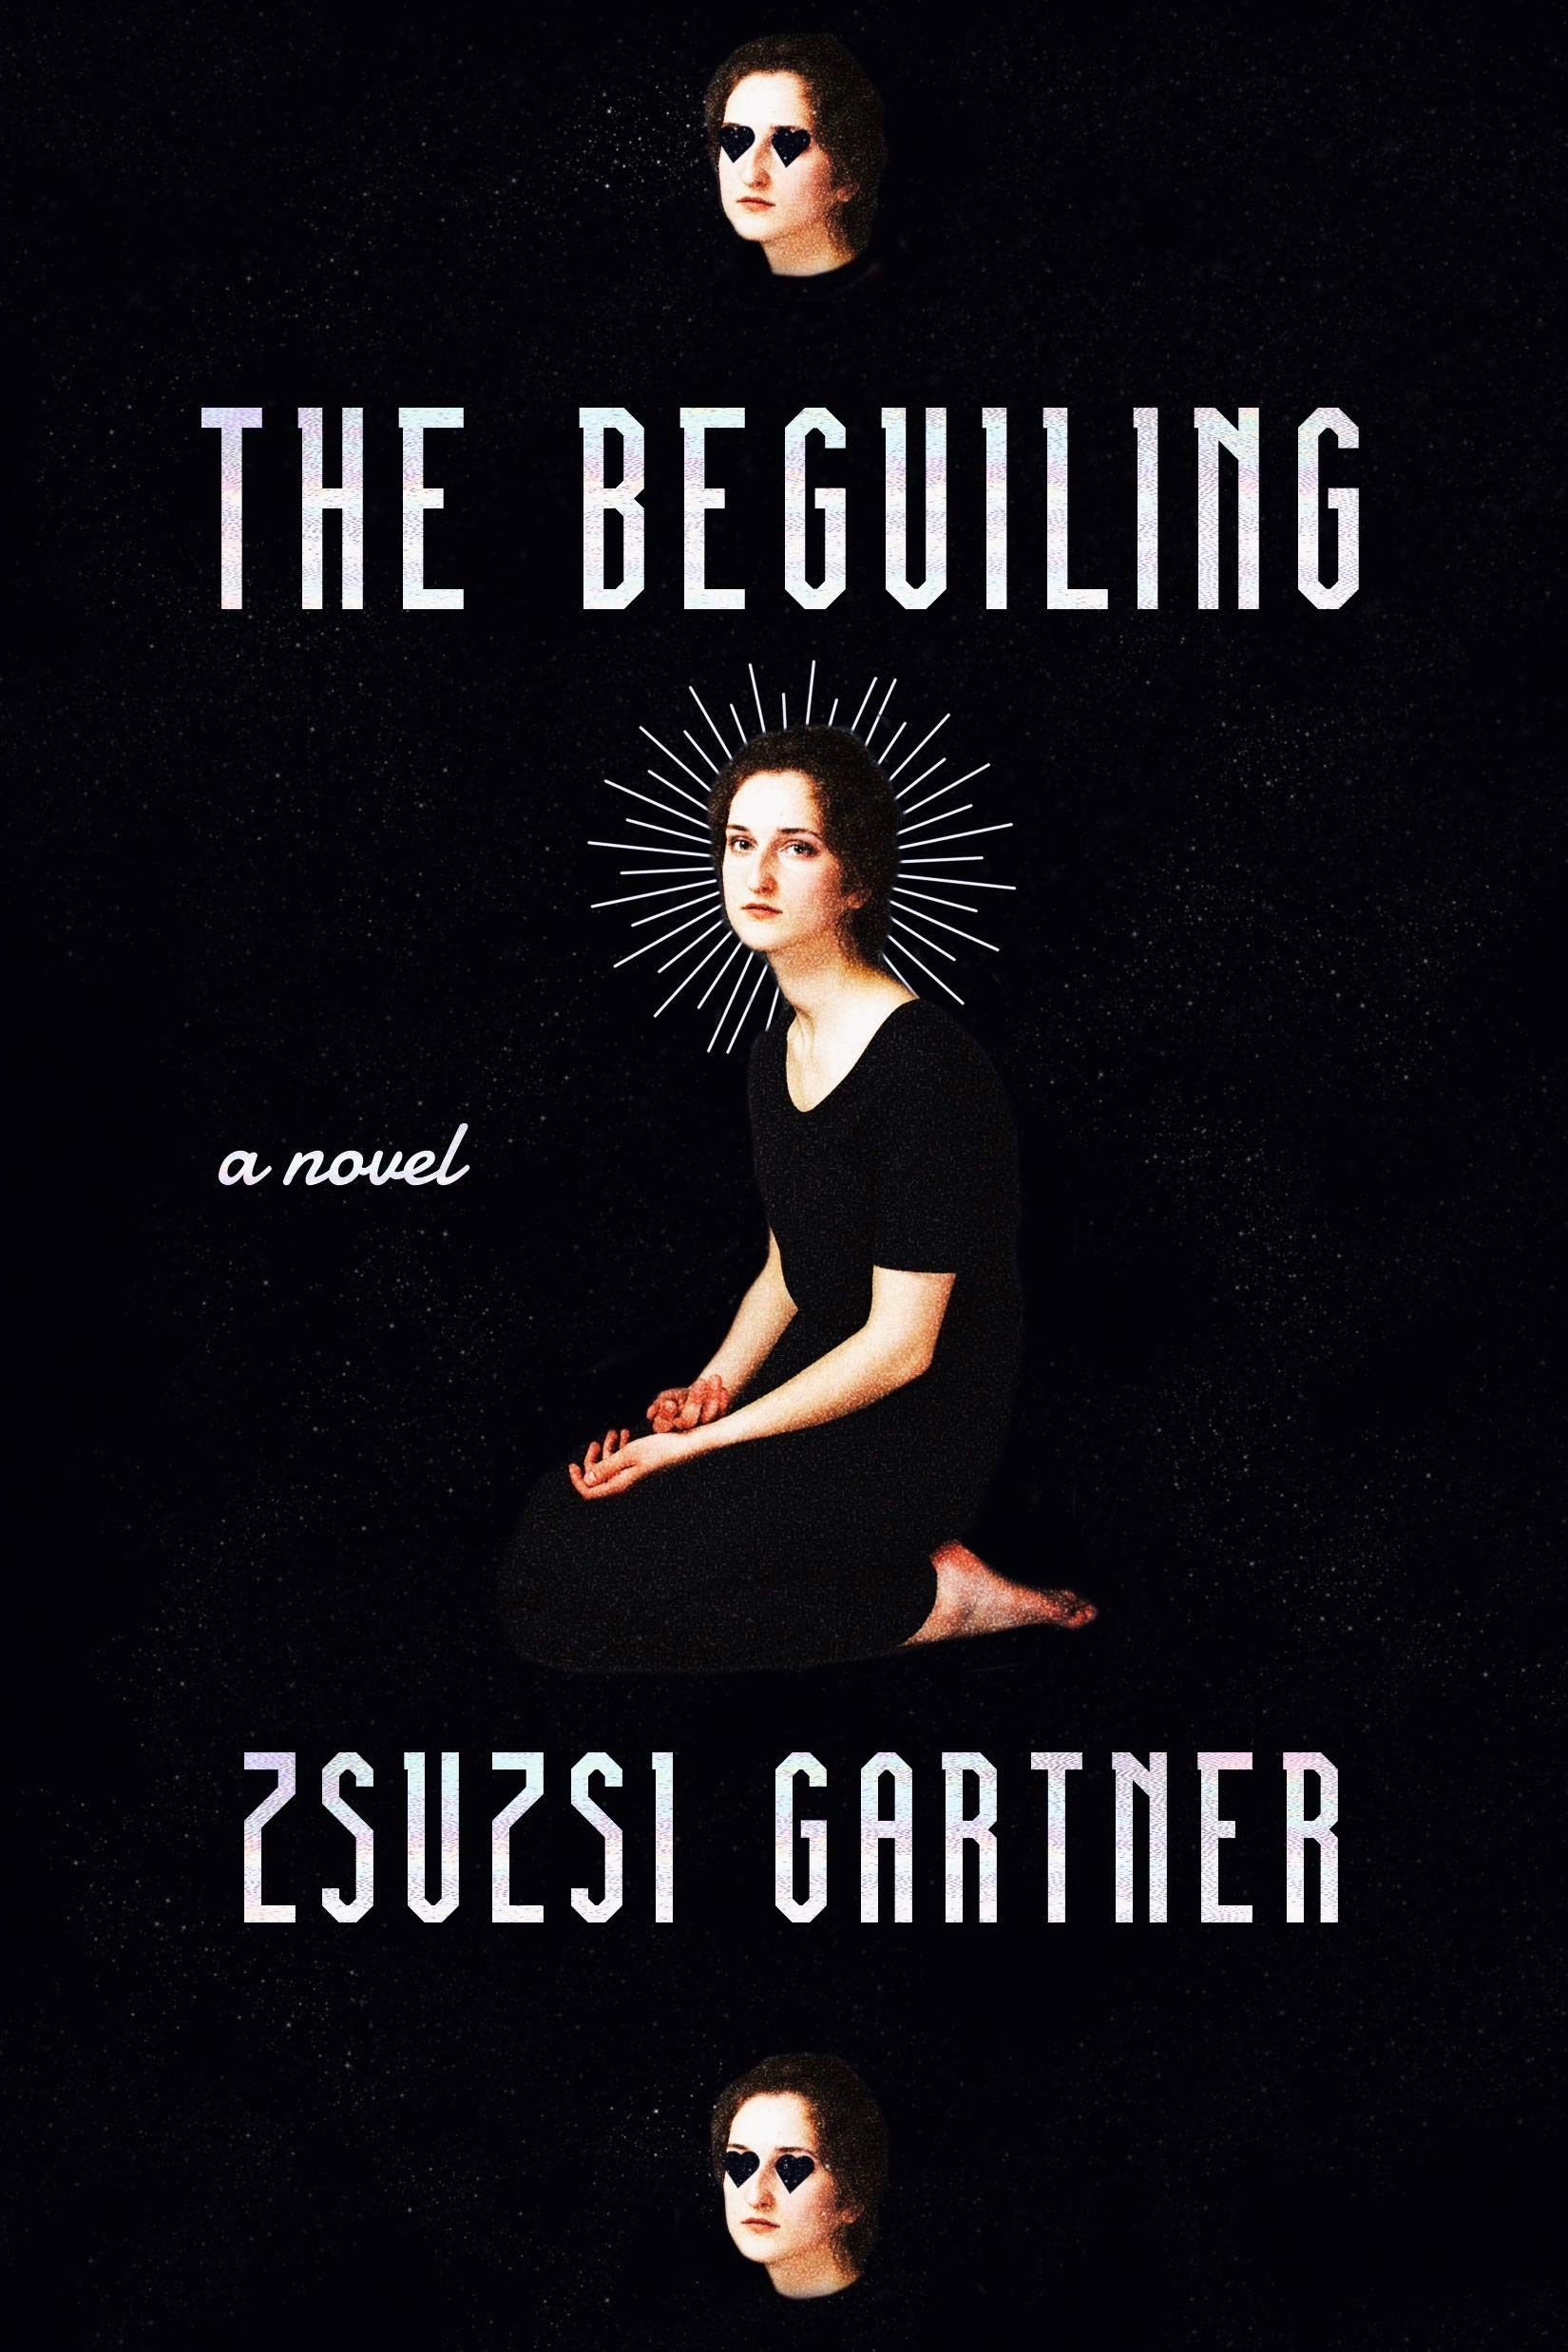 The Beguiling book